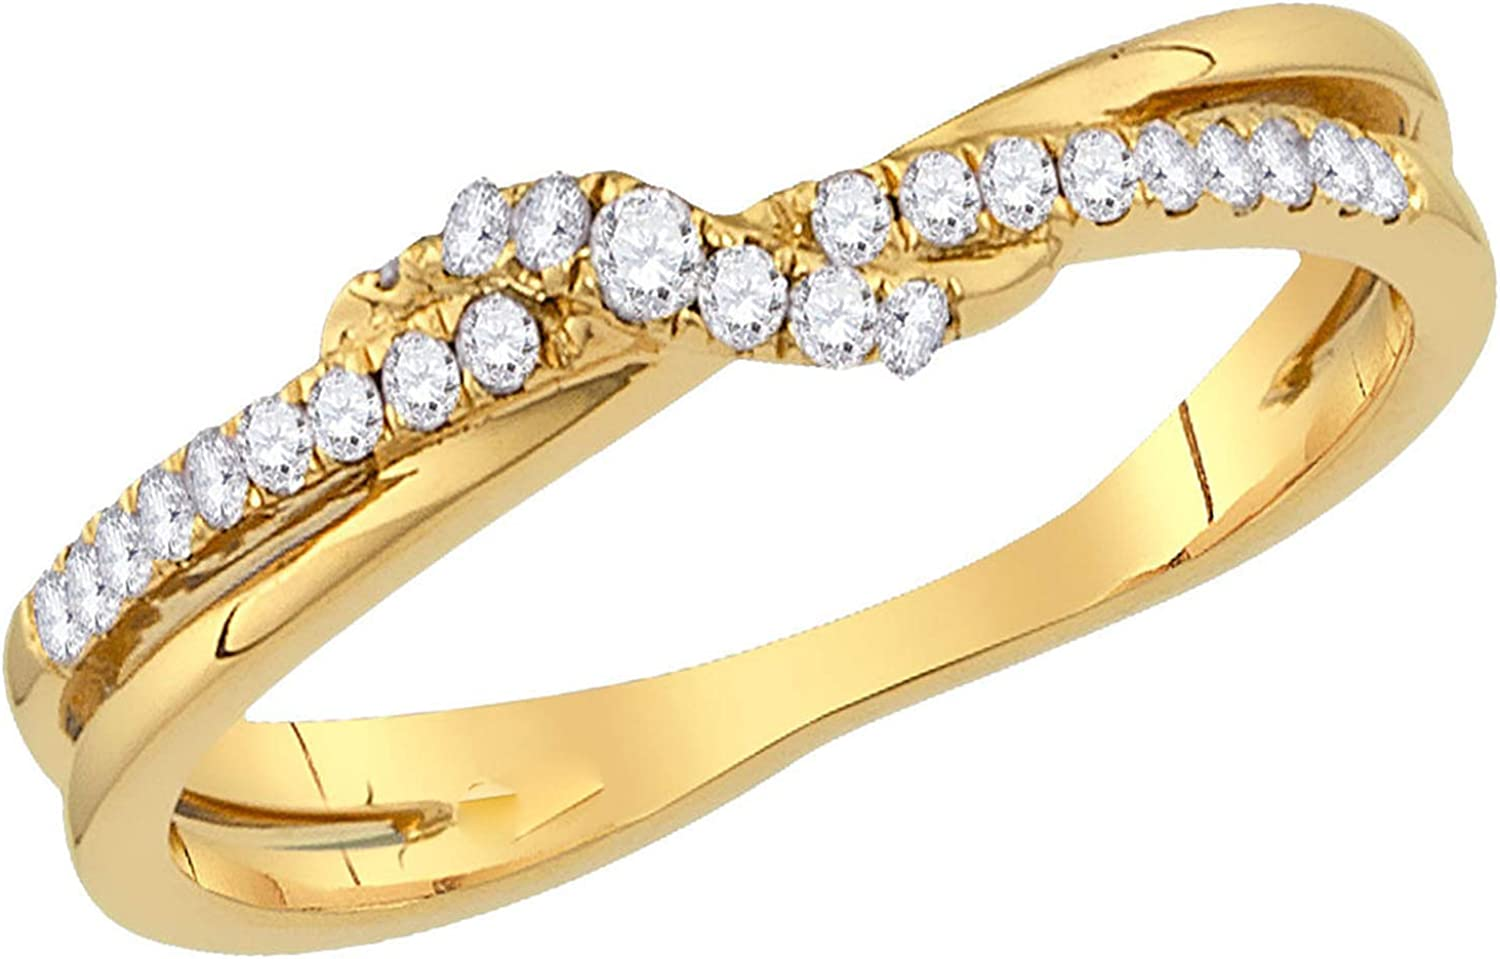 MD Jewellery Fashion Ring 14K Yellow Gold Plated Simulated Diamond Studded Alloy Jewellery